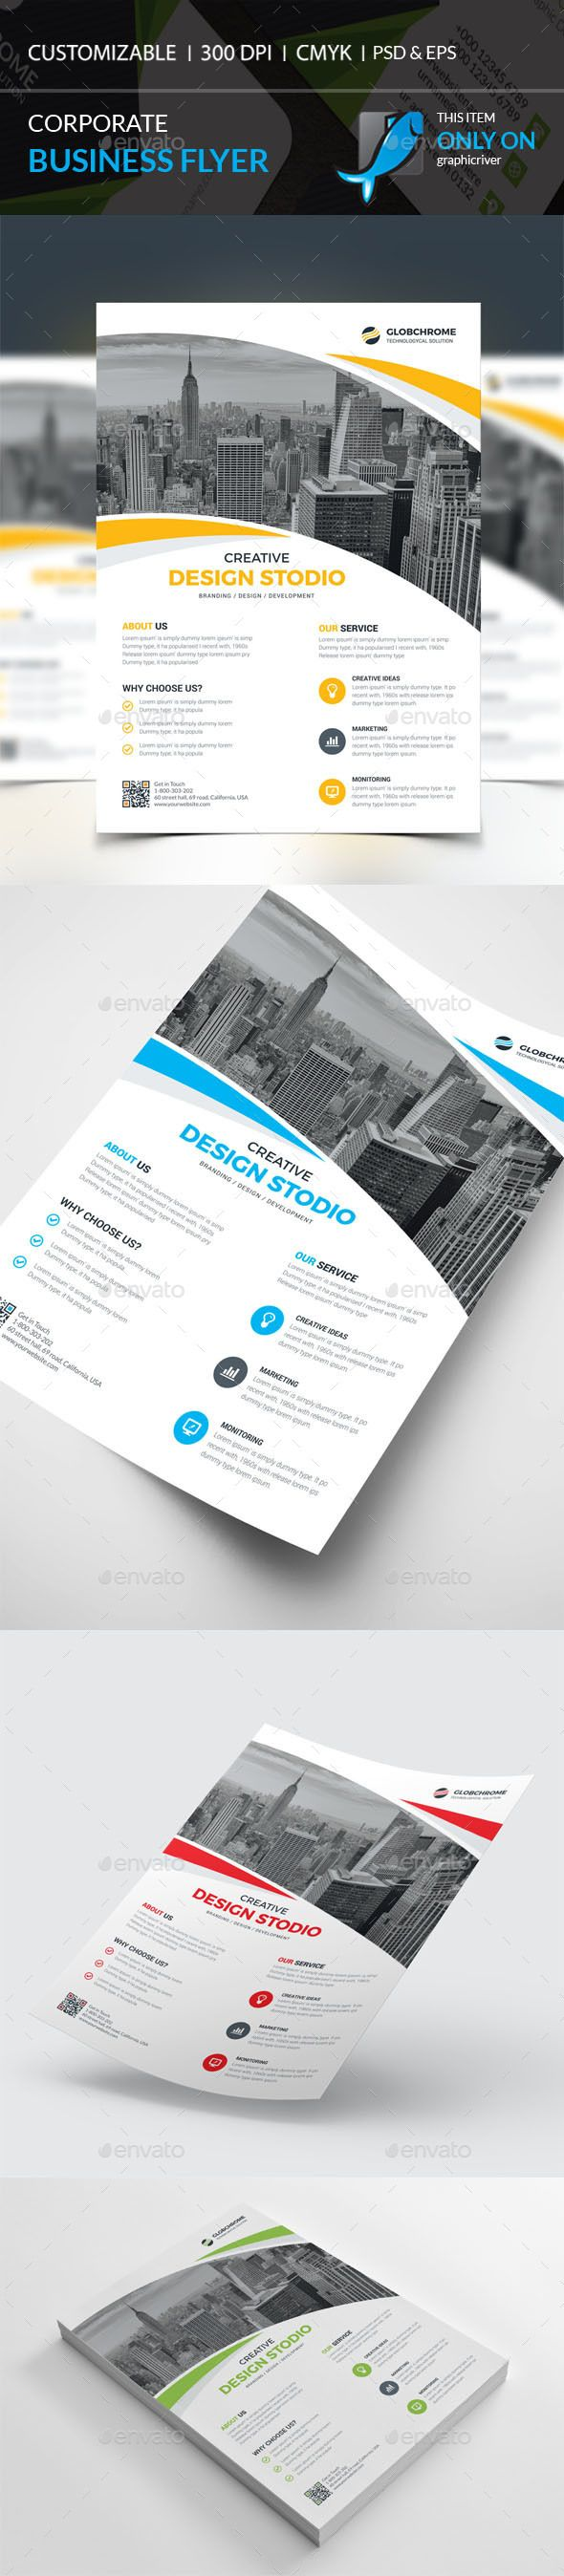 Corporate Flyer Template PSD #design Download: http://graphicriver.net/item/corporate-flyer/14109918?ref=ksioks